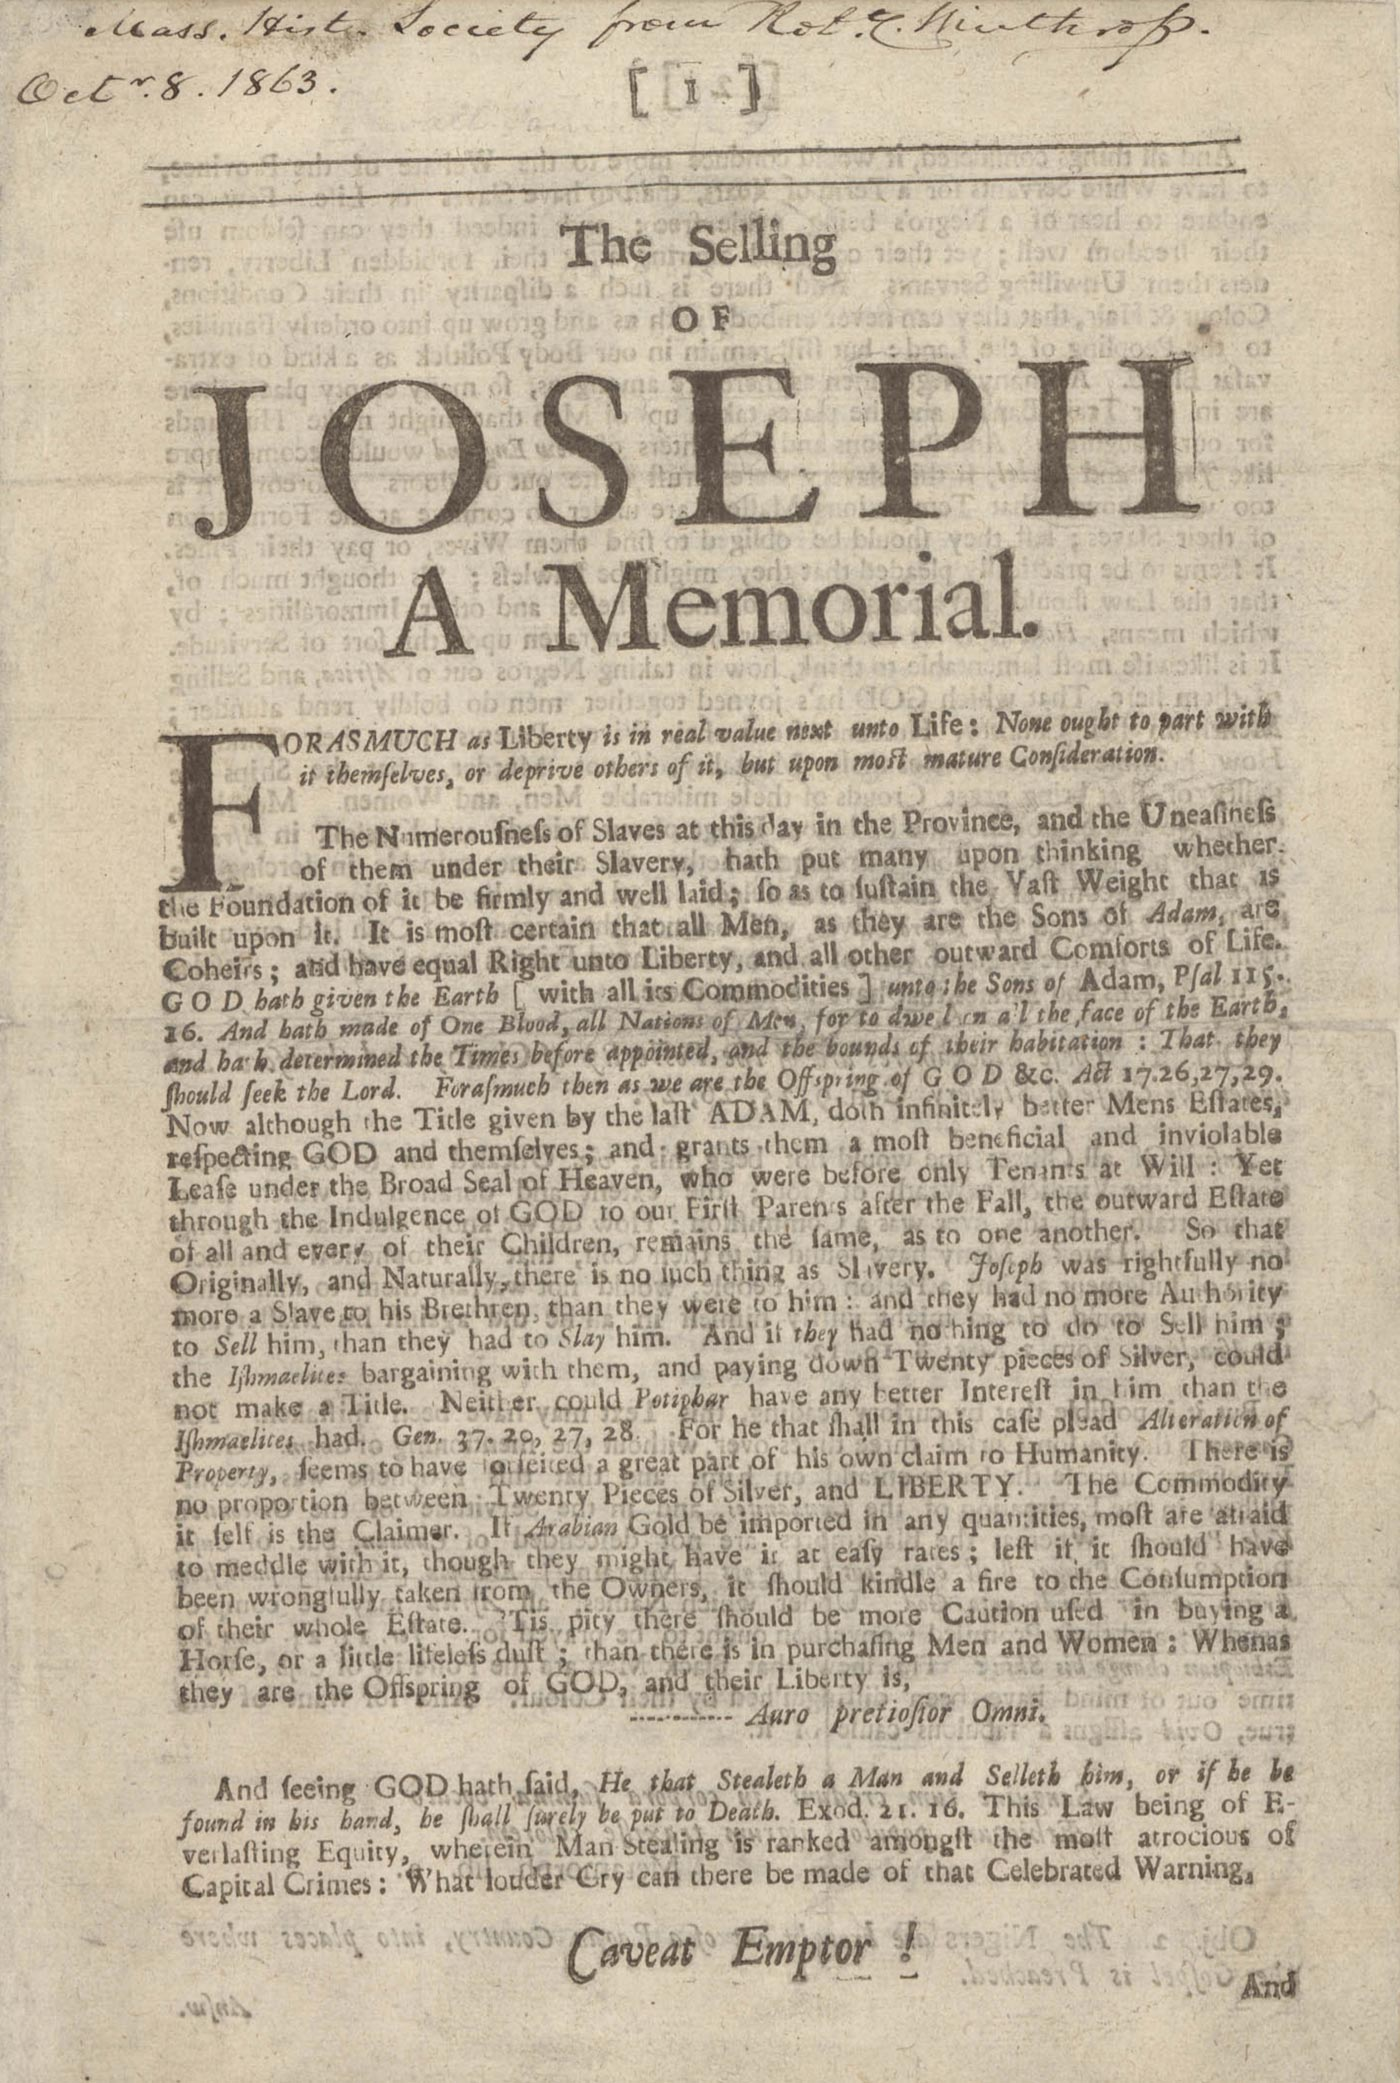 A page from The Selling of Joseph